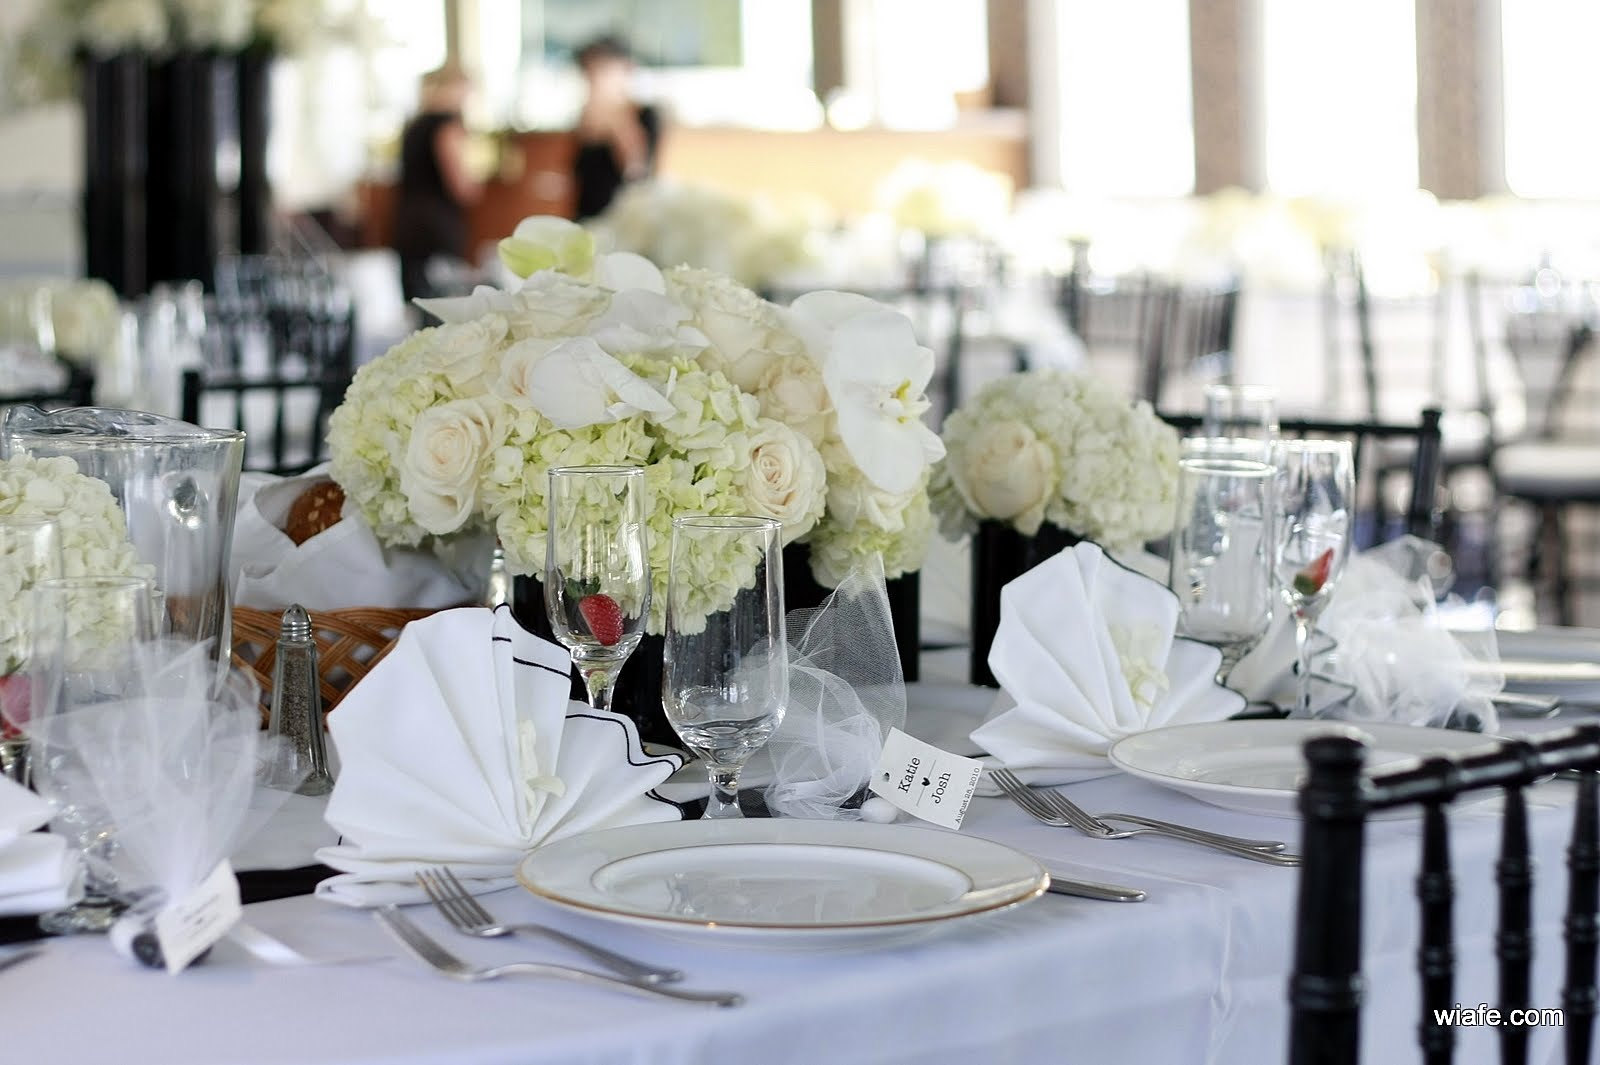 wedding chair covers hire melbourne balance ball reviews cover interior design photos gallery images table centrepieces romantic decoration